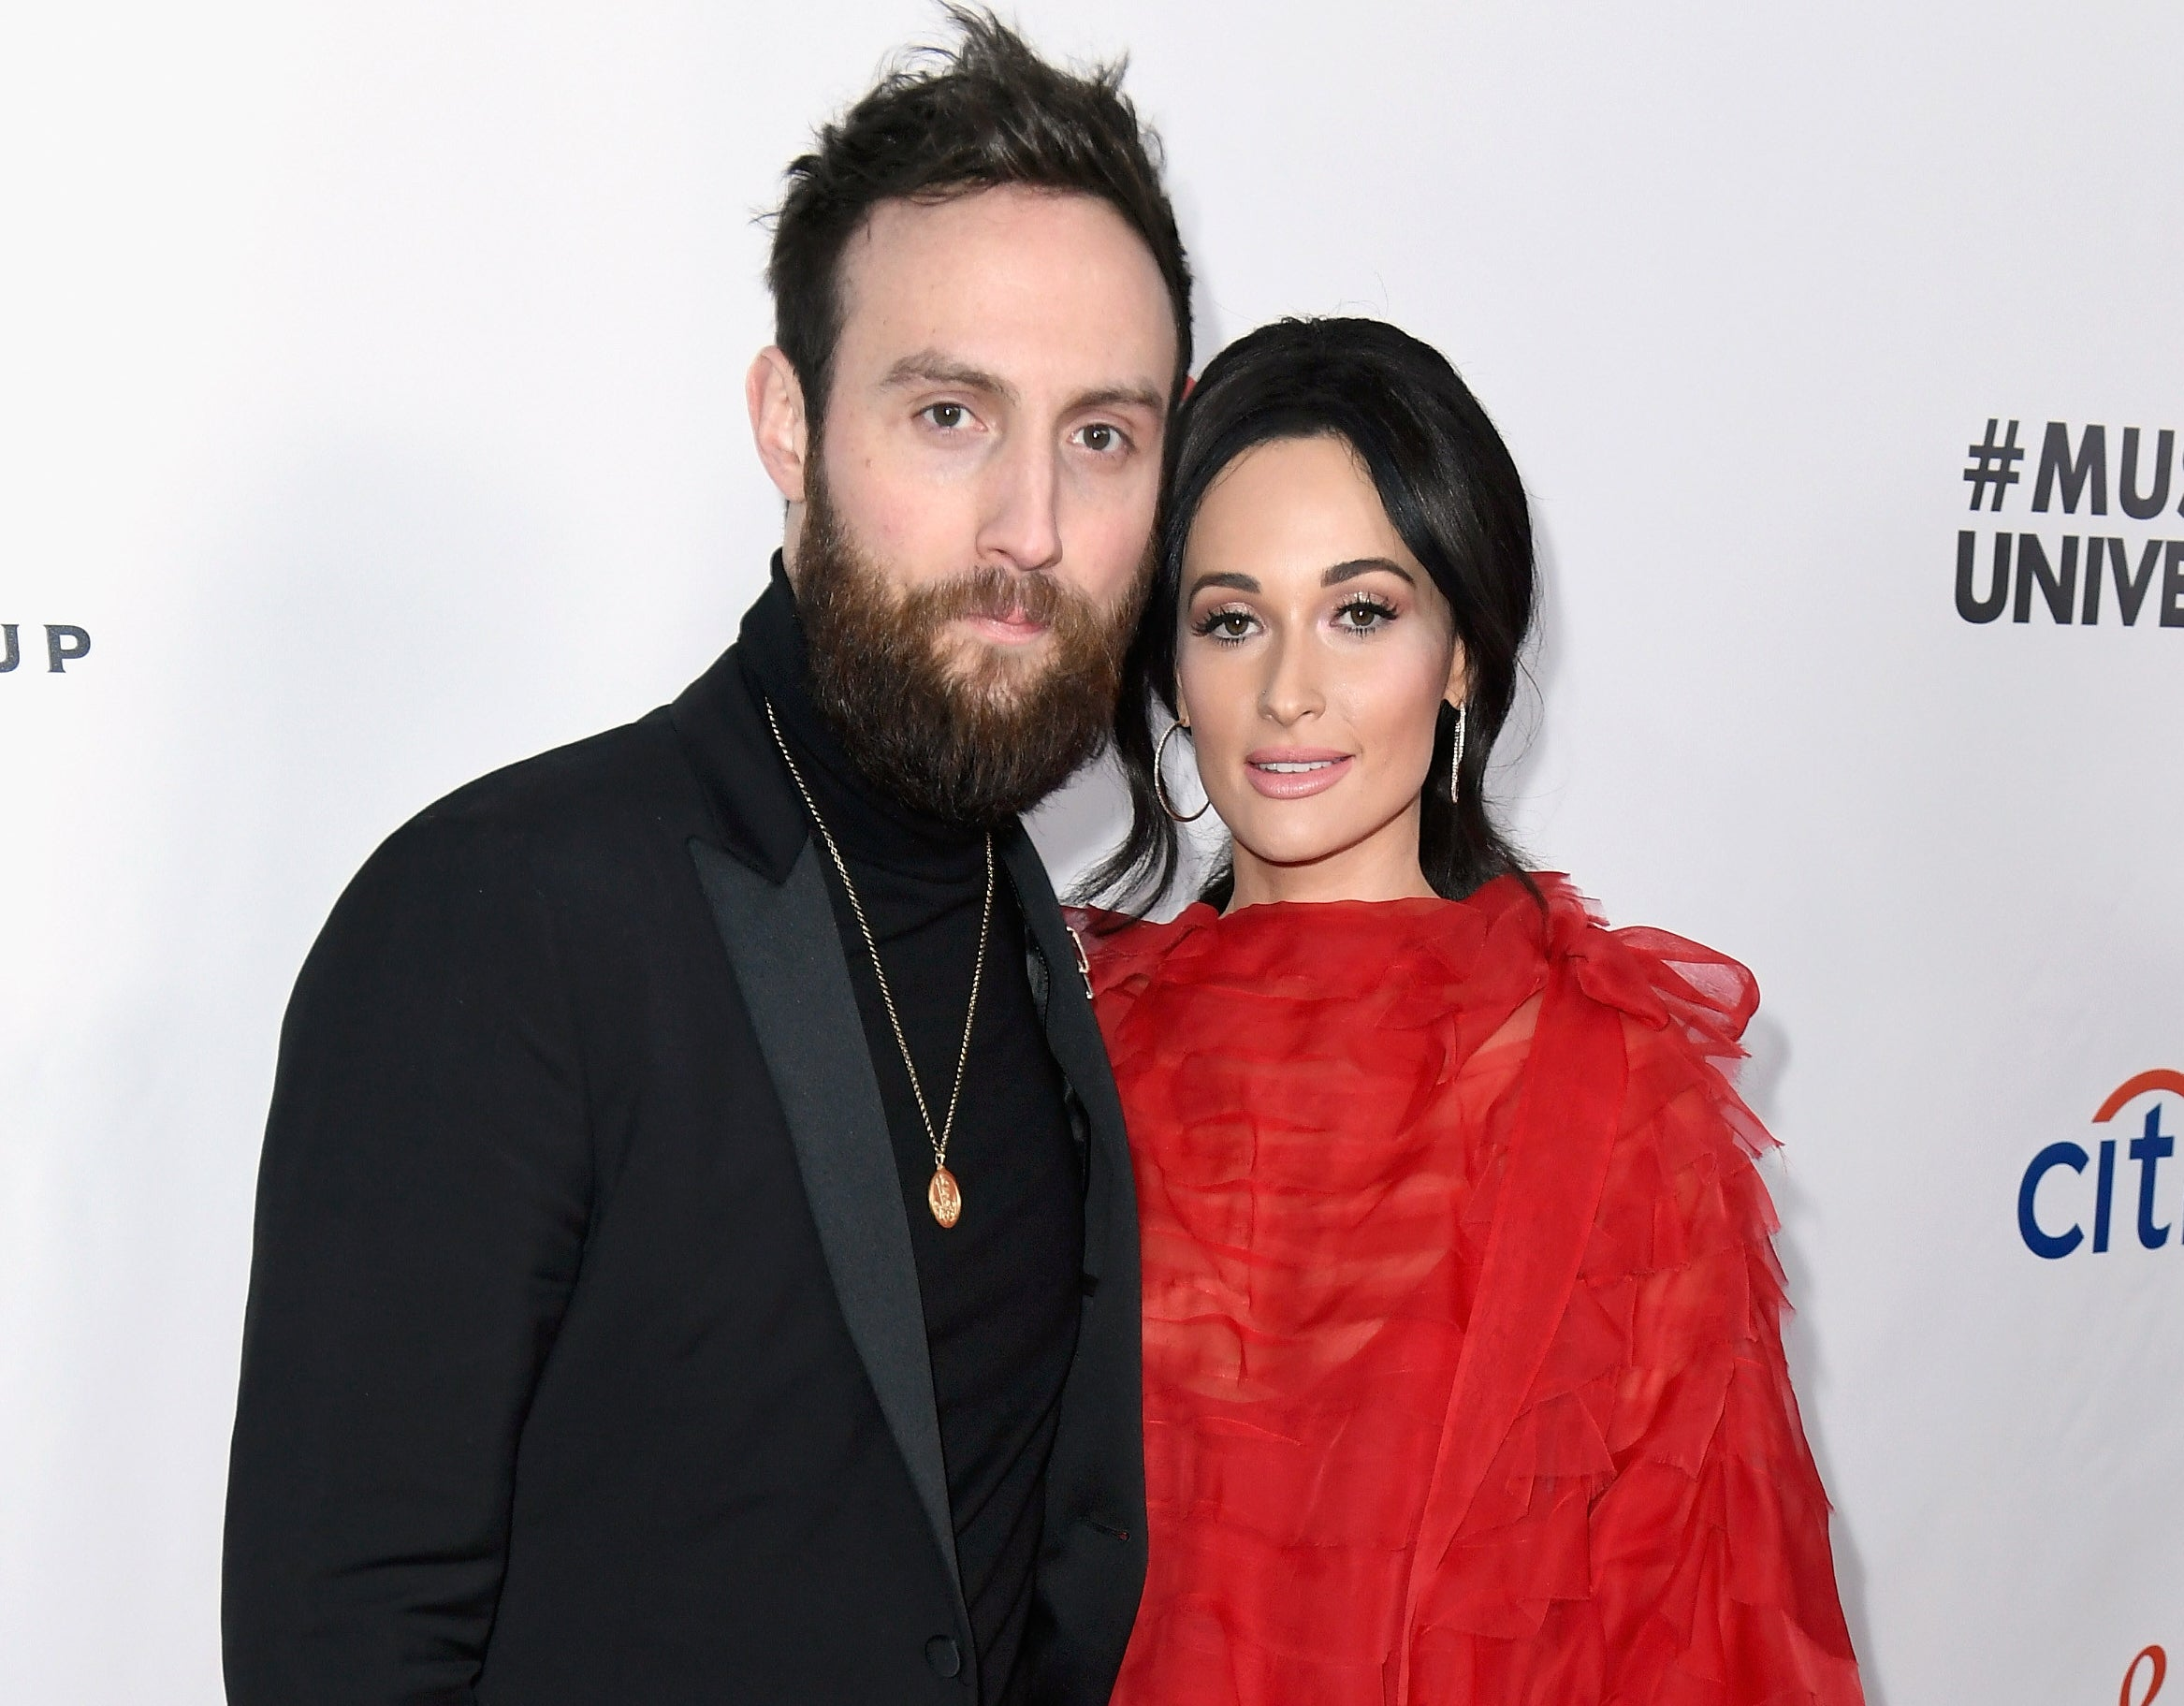 Kacey posing with ex Ruston at an event